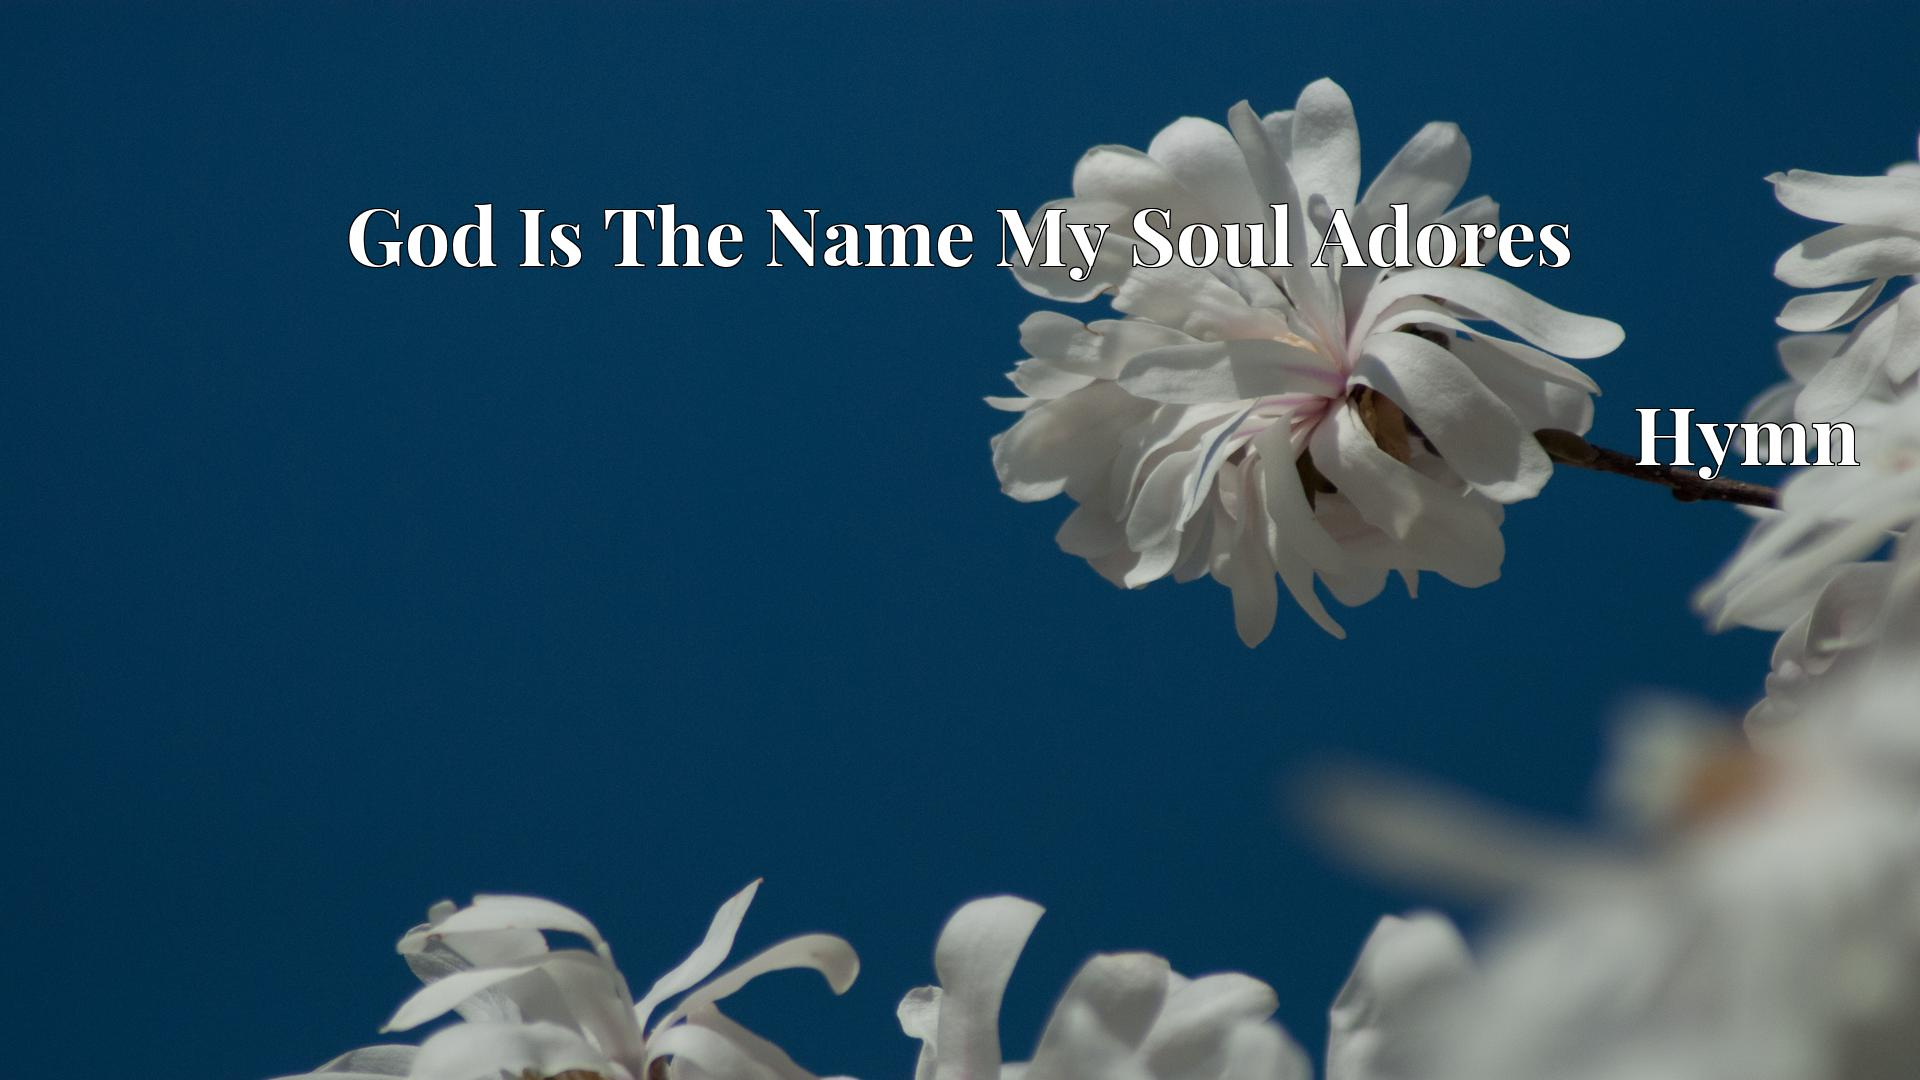 God Is The Name My Soul Adores - Hymn